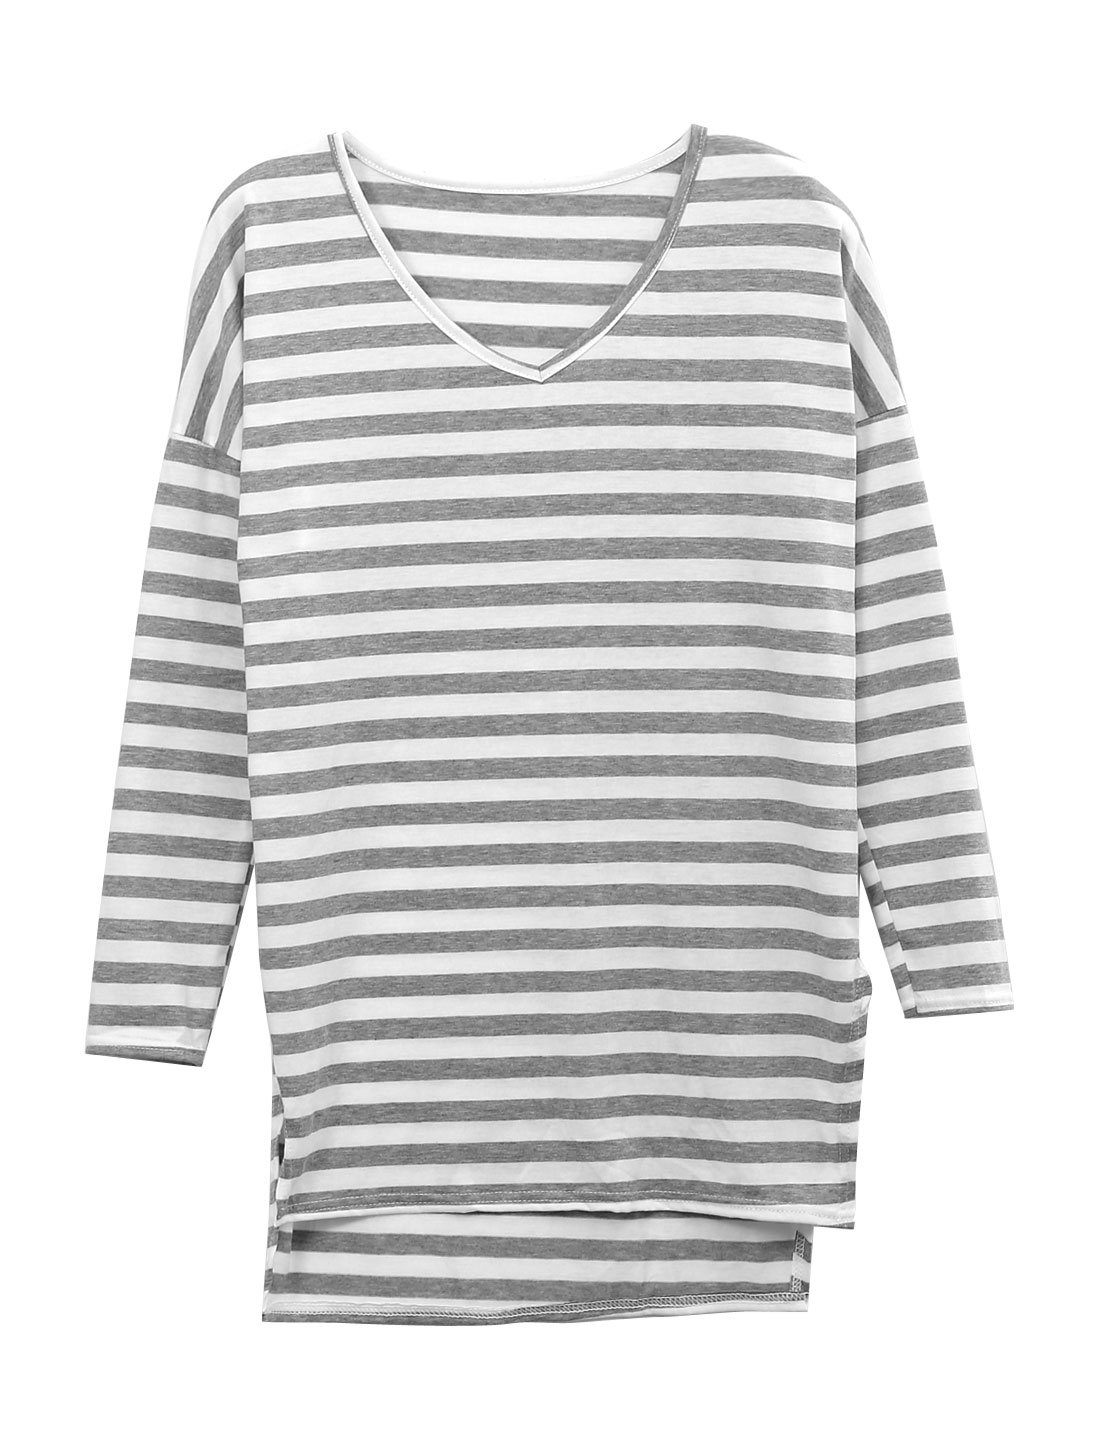 Lady Pullover Stripes Vent Side Loose Fit Tunic Top Light Gray White XS